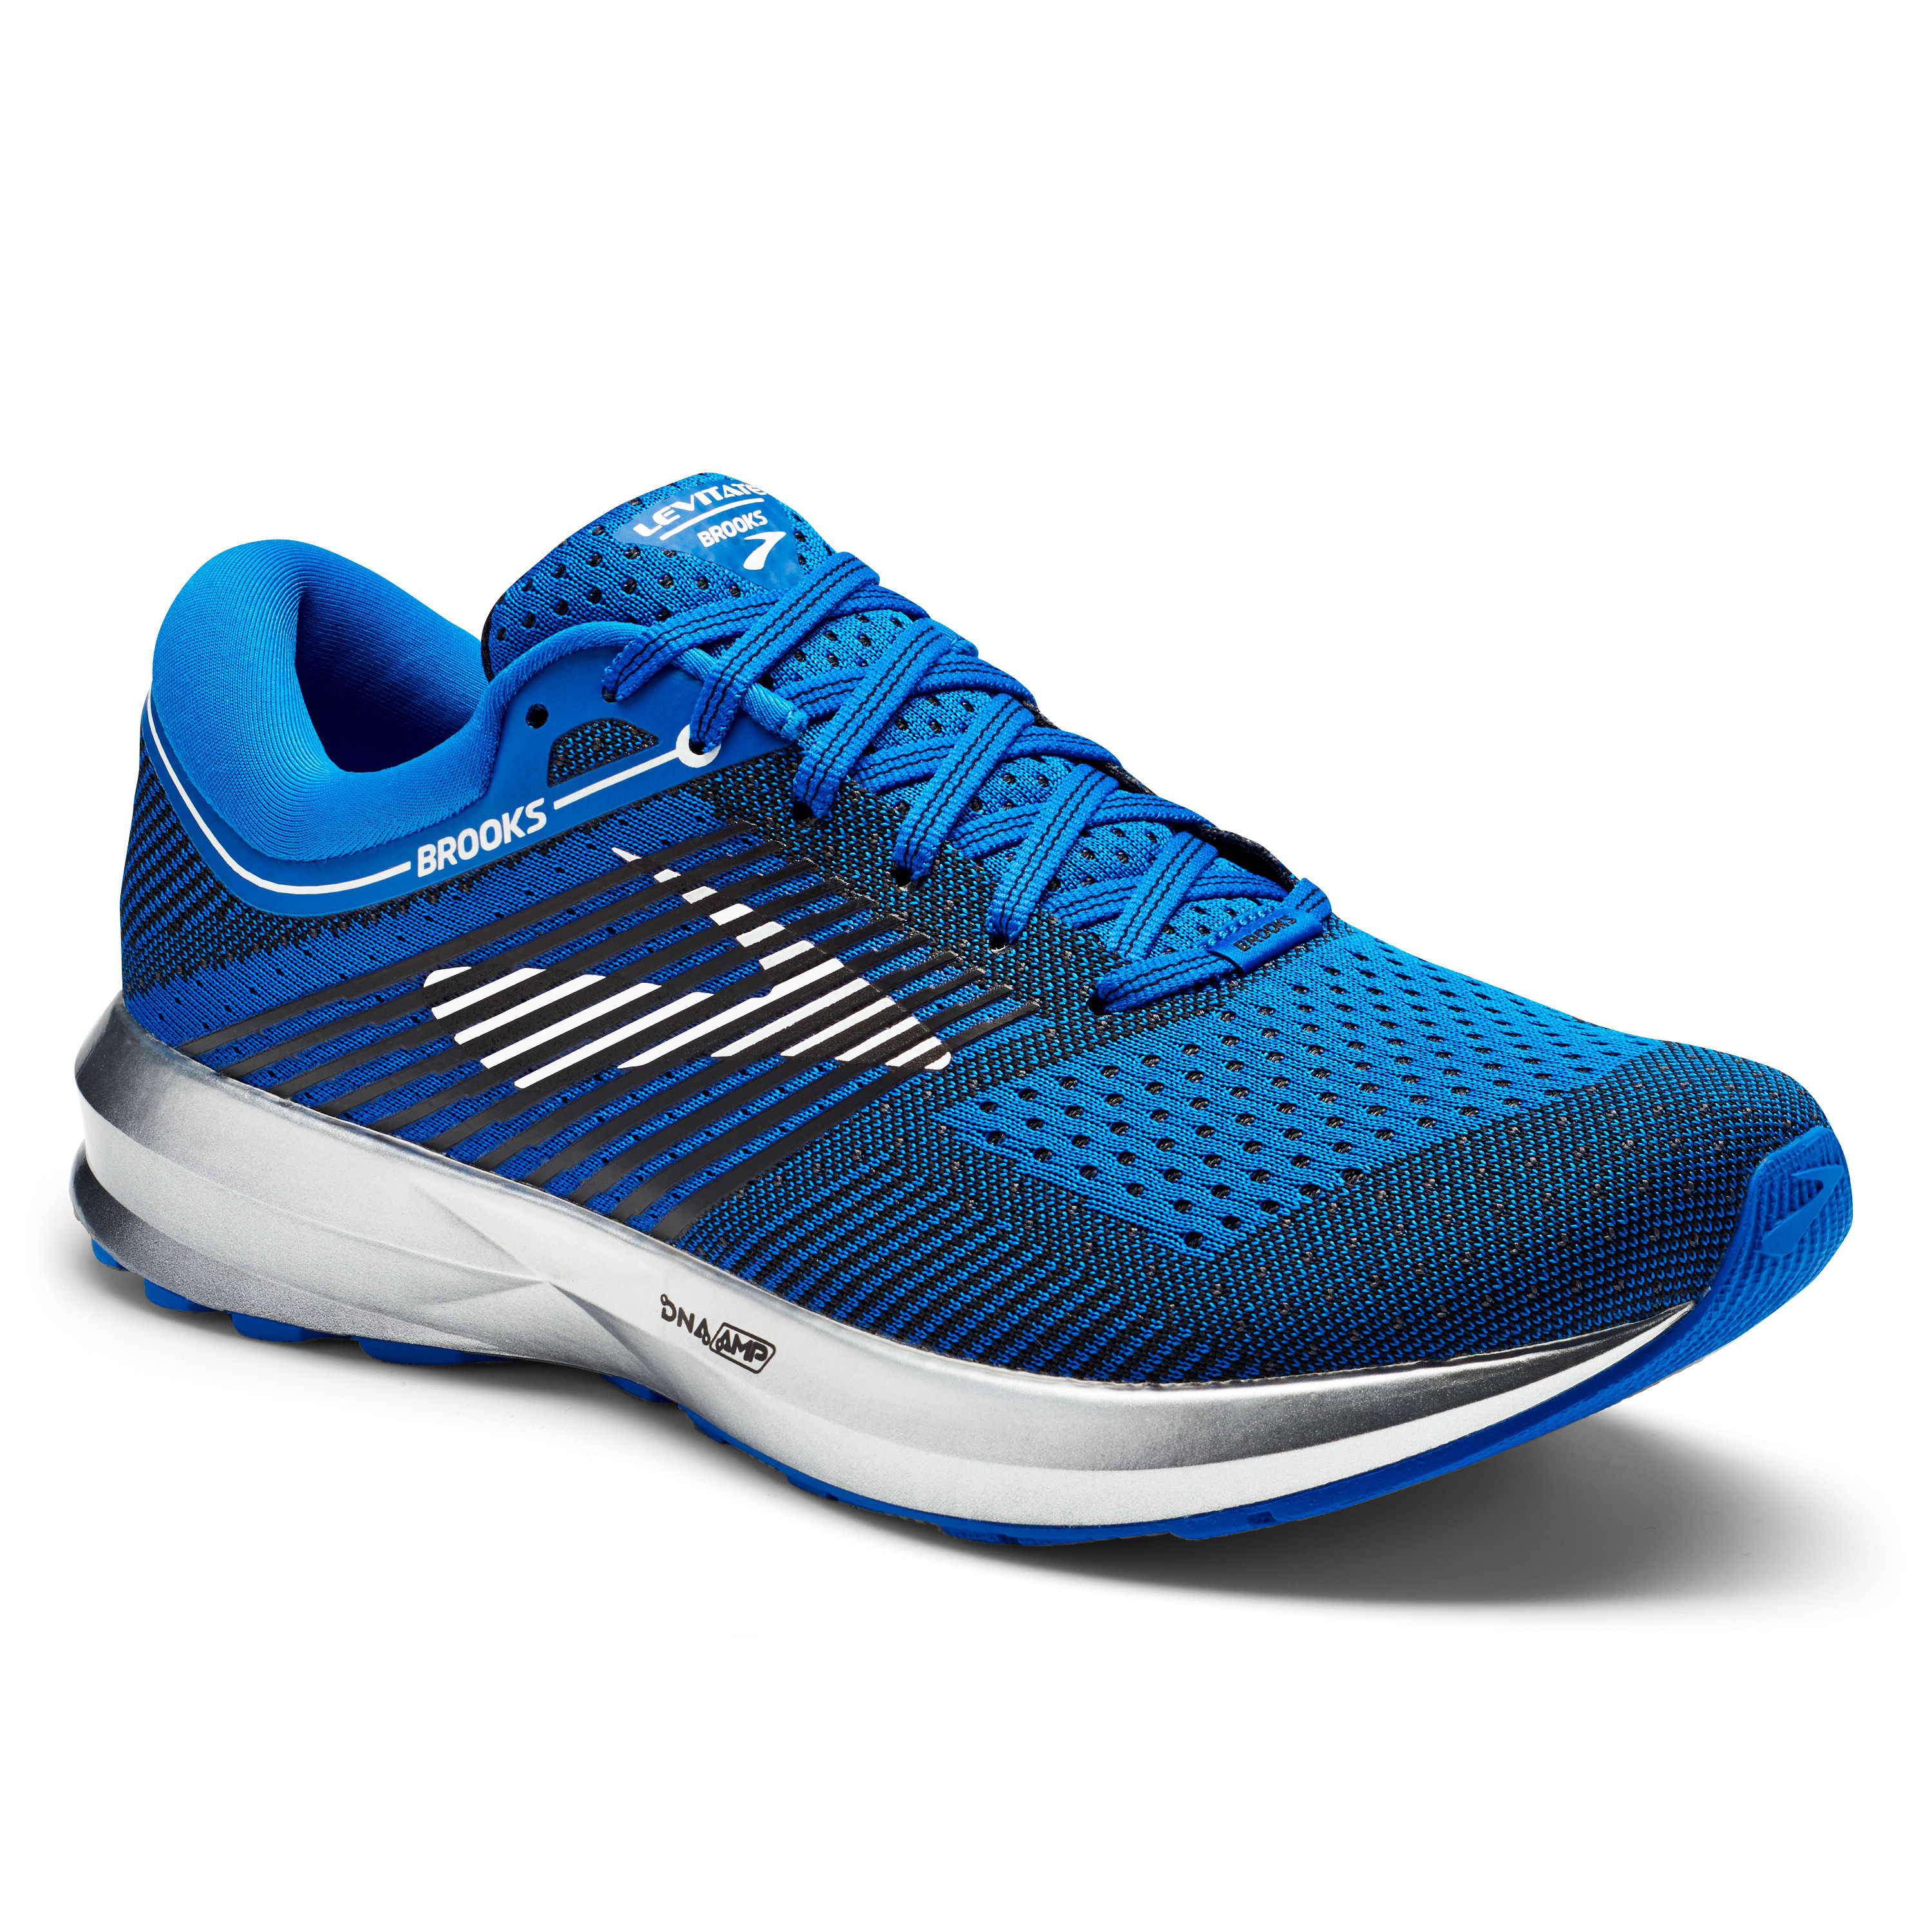 Brooks Levitate with DNA AMP Delivers